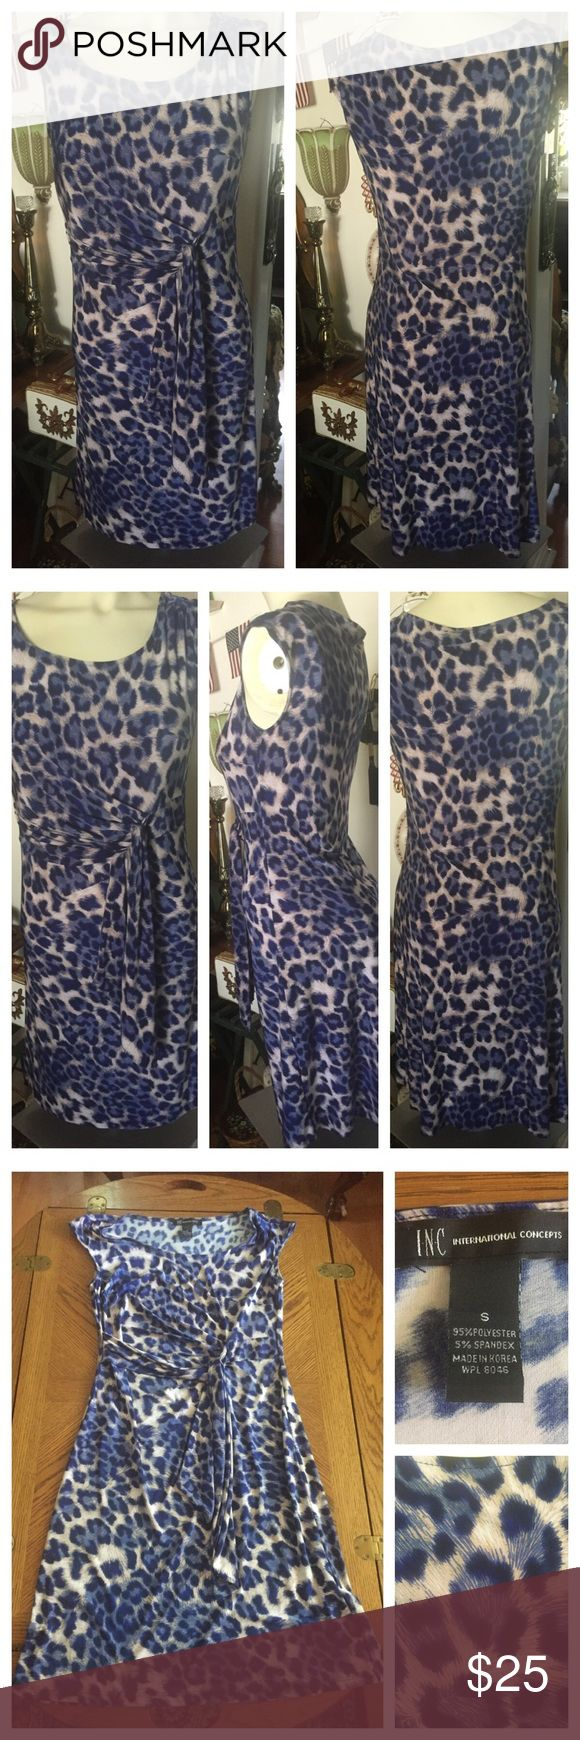 INC International Faux Wrap Dress Stretchy faux wrap dress in a great blue and white print by INC International Concepts ~ Size Small.  A beautifully draped tie front. In excellent and clean preowned condition. Smoke-free home. INC International Concepts Dresses Midi